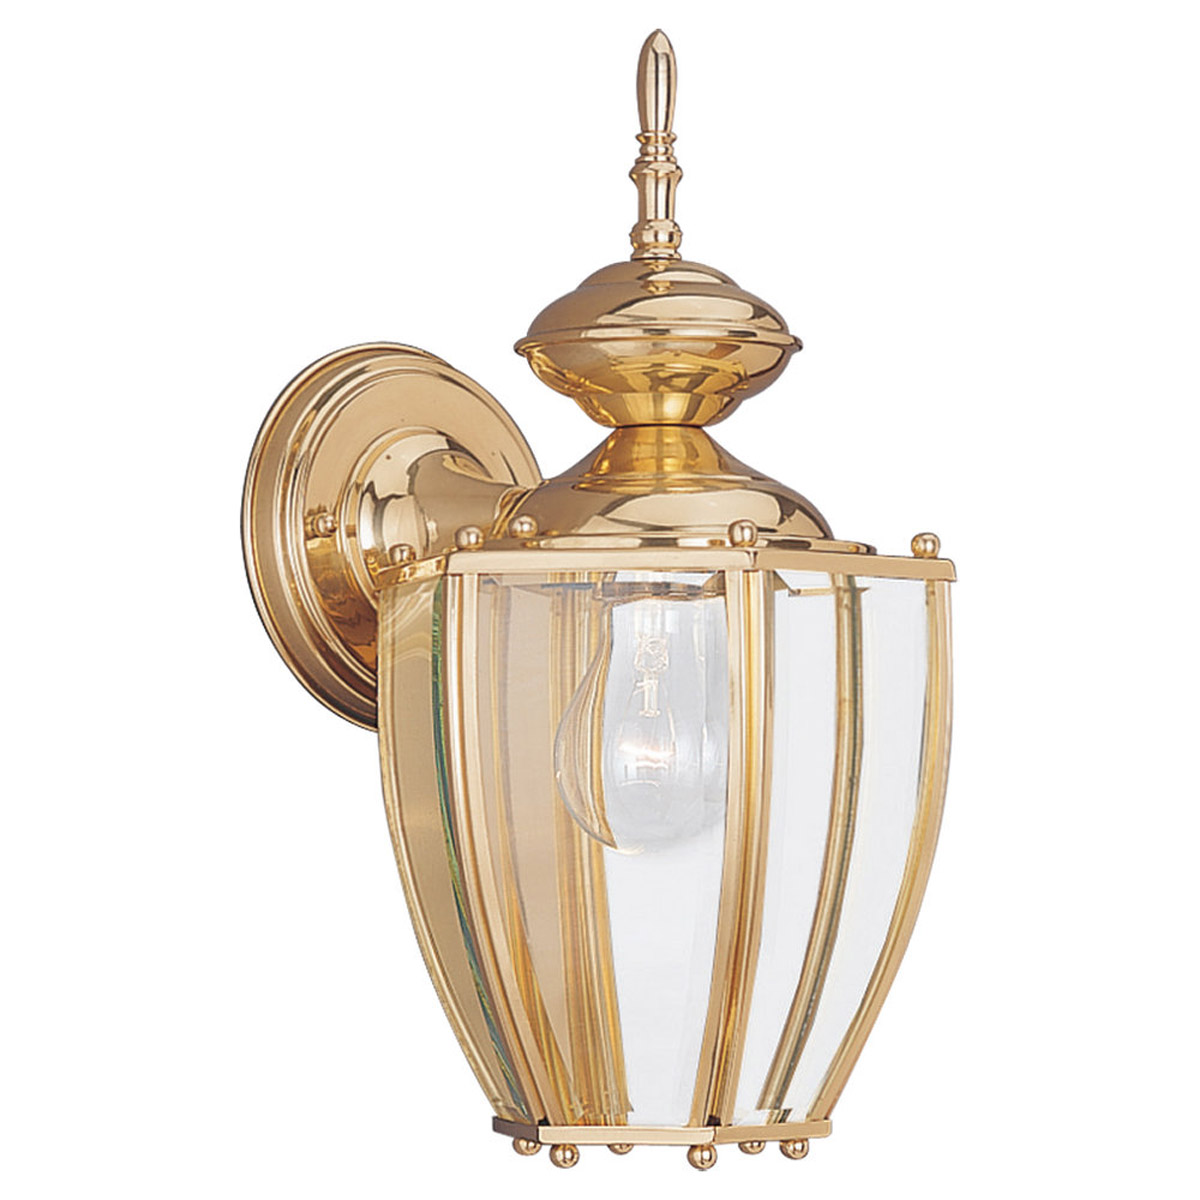 Sea Gull Lighting Society Hill 1 Light Outdoor Wall Lantern in Polished Brass 8580-02